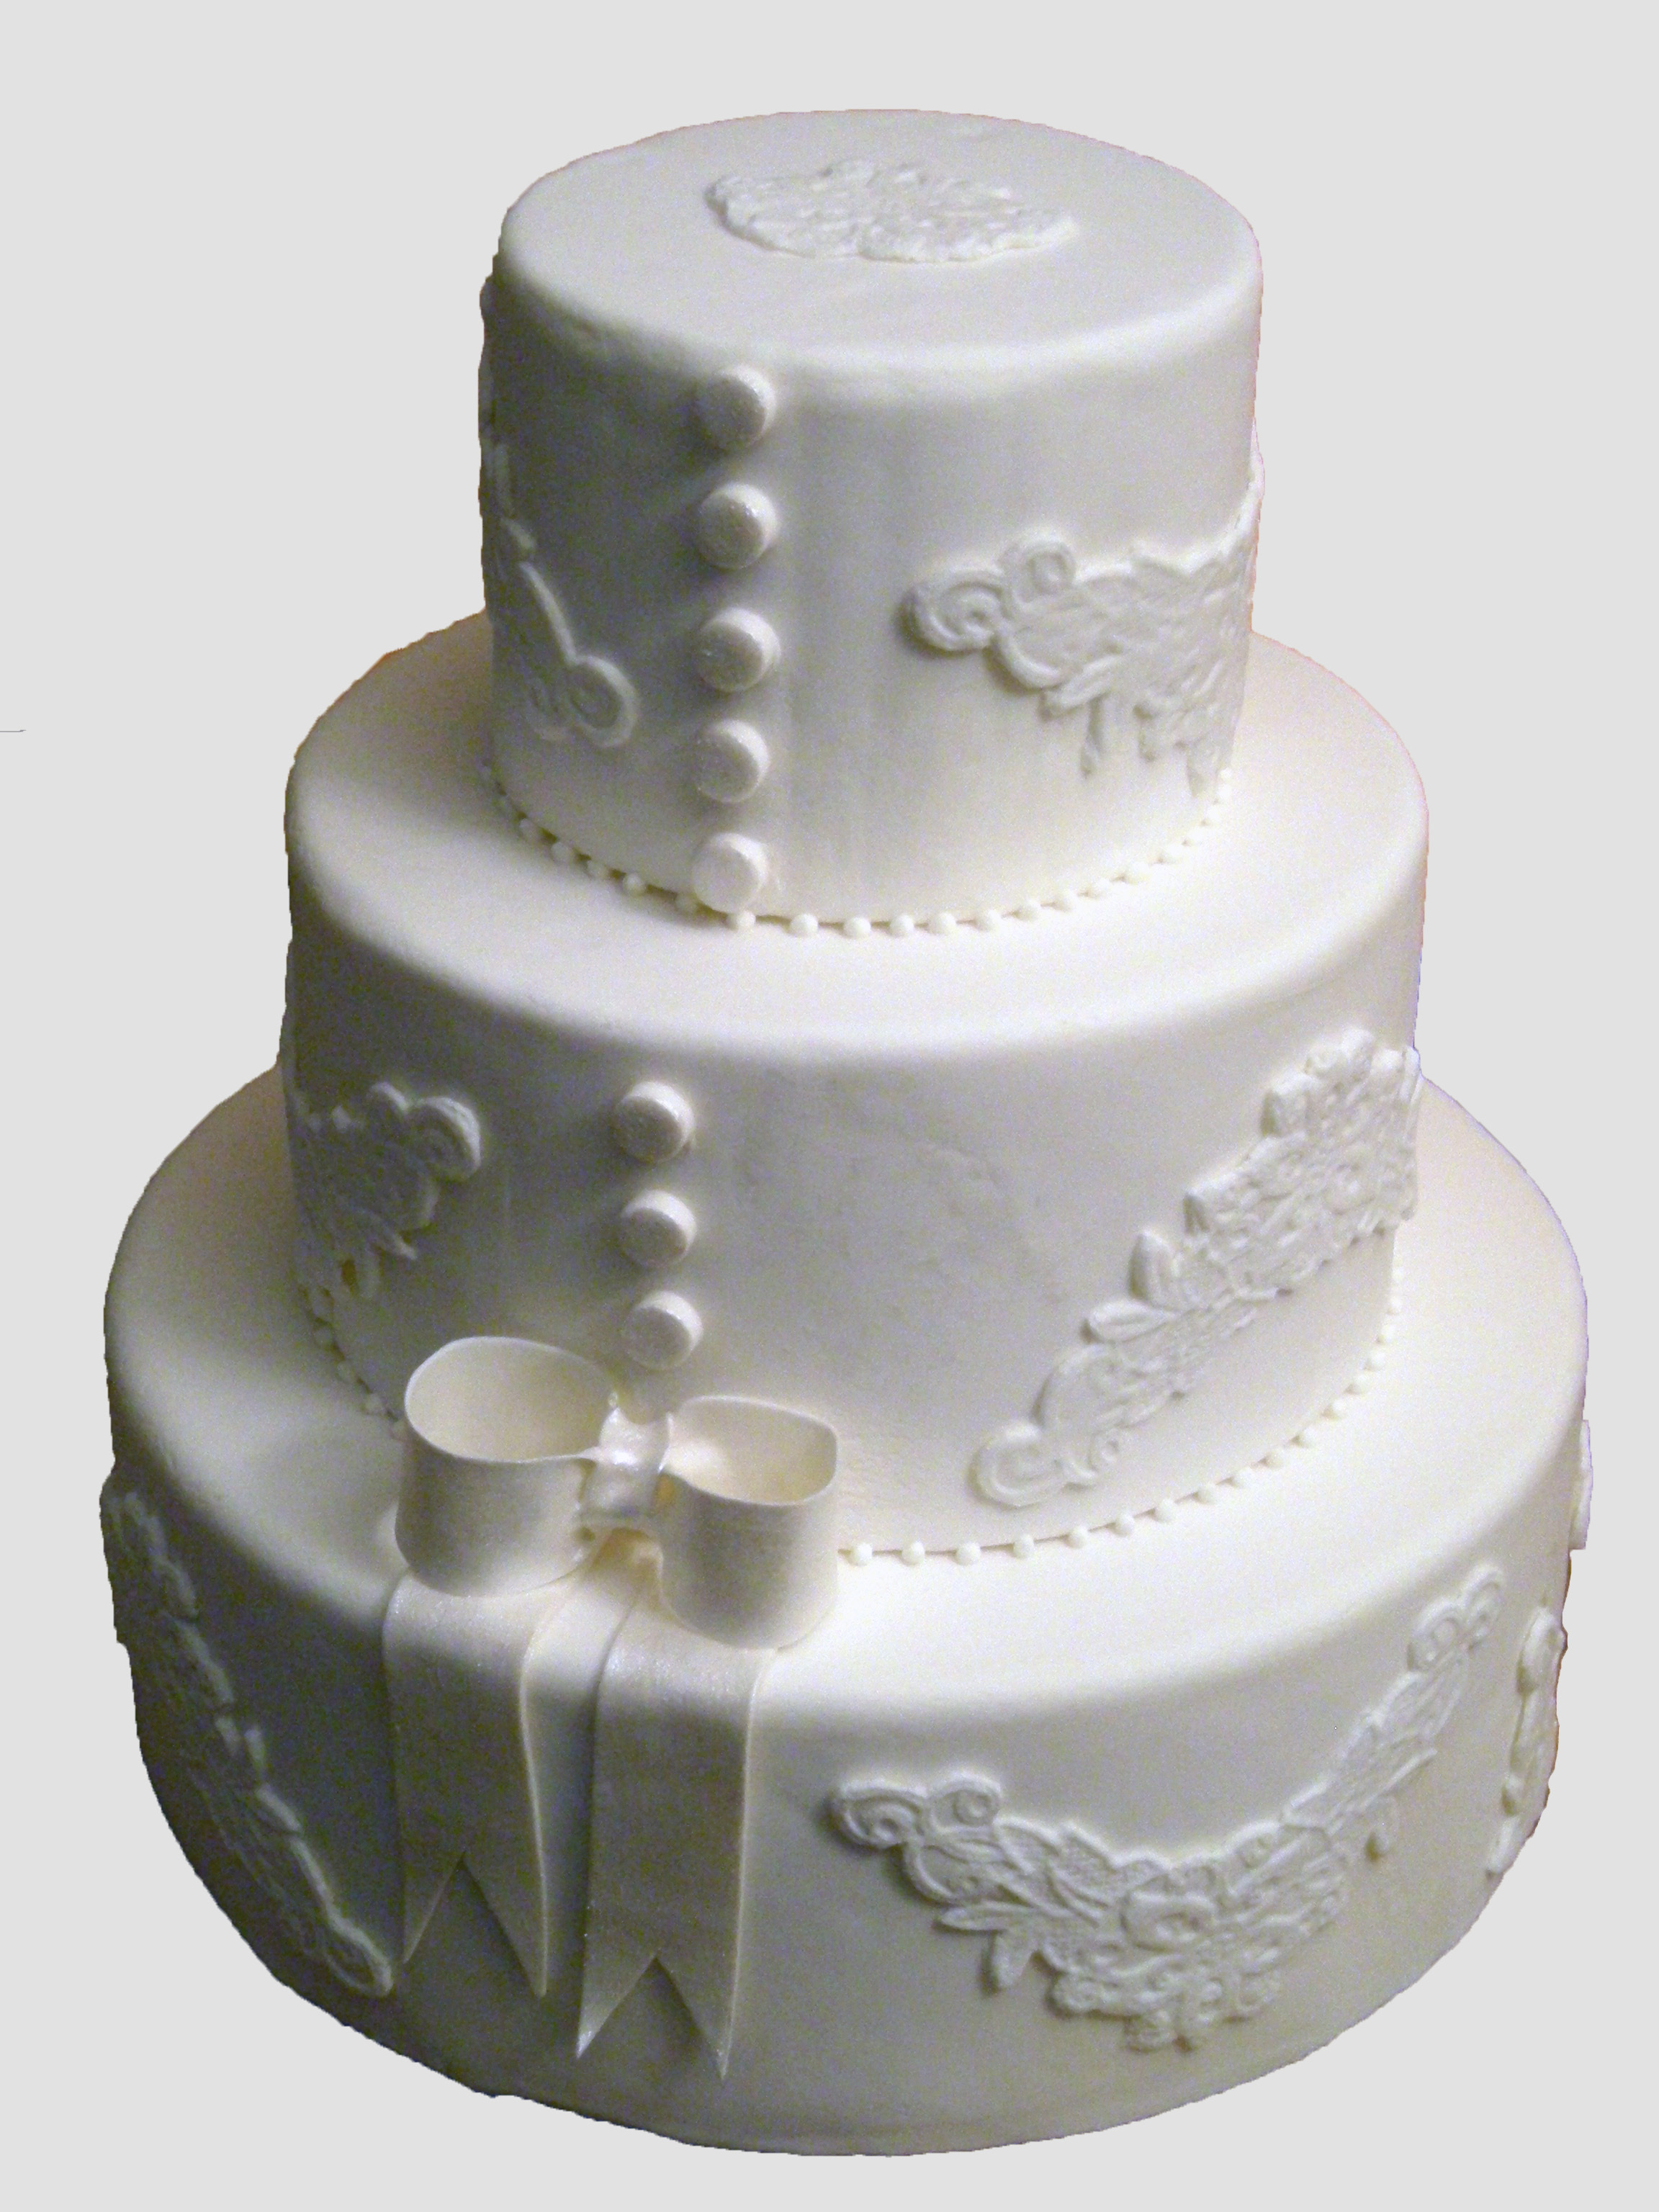 Cakes, white, cake, Classic, Classic Wedding Cakes, Wedding, Lace, Bows, Pastry girl cakes